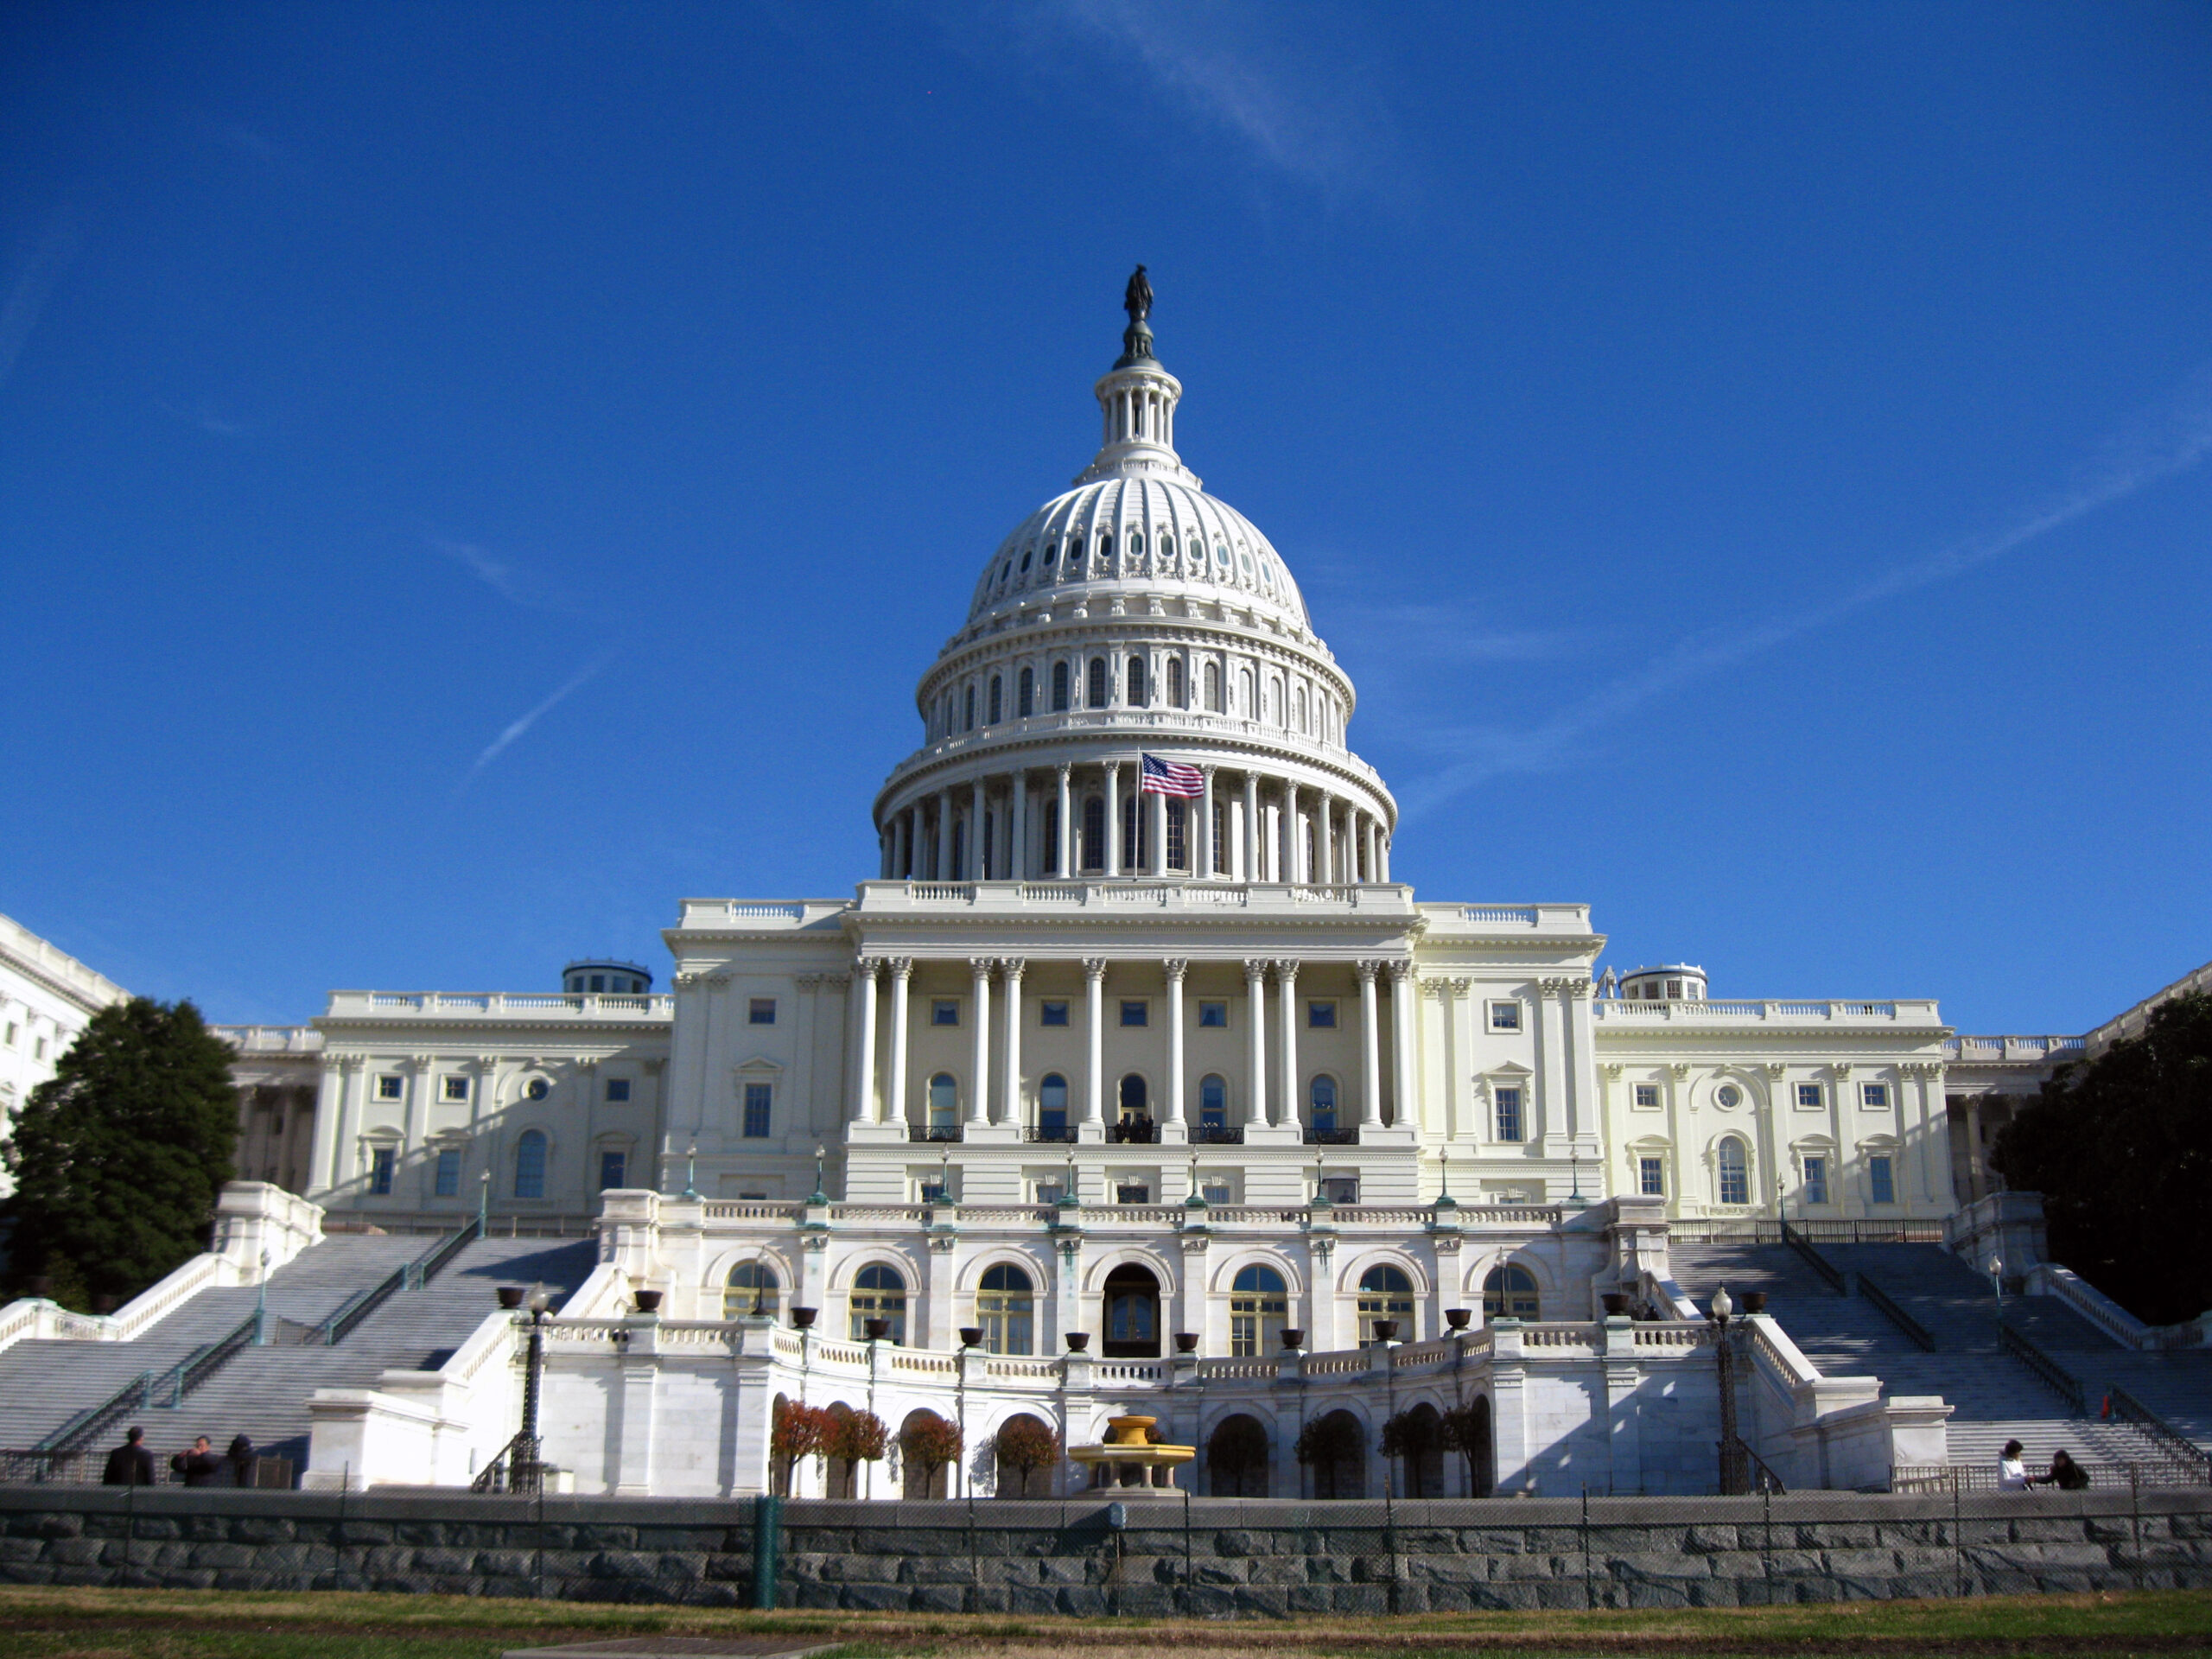 capitol-building-washington-dc-